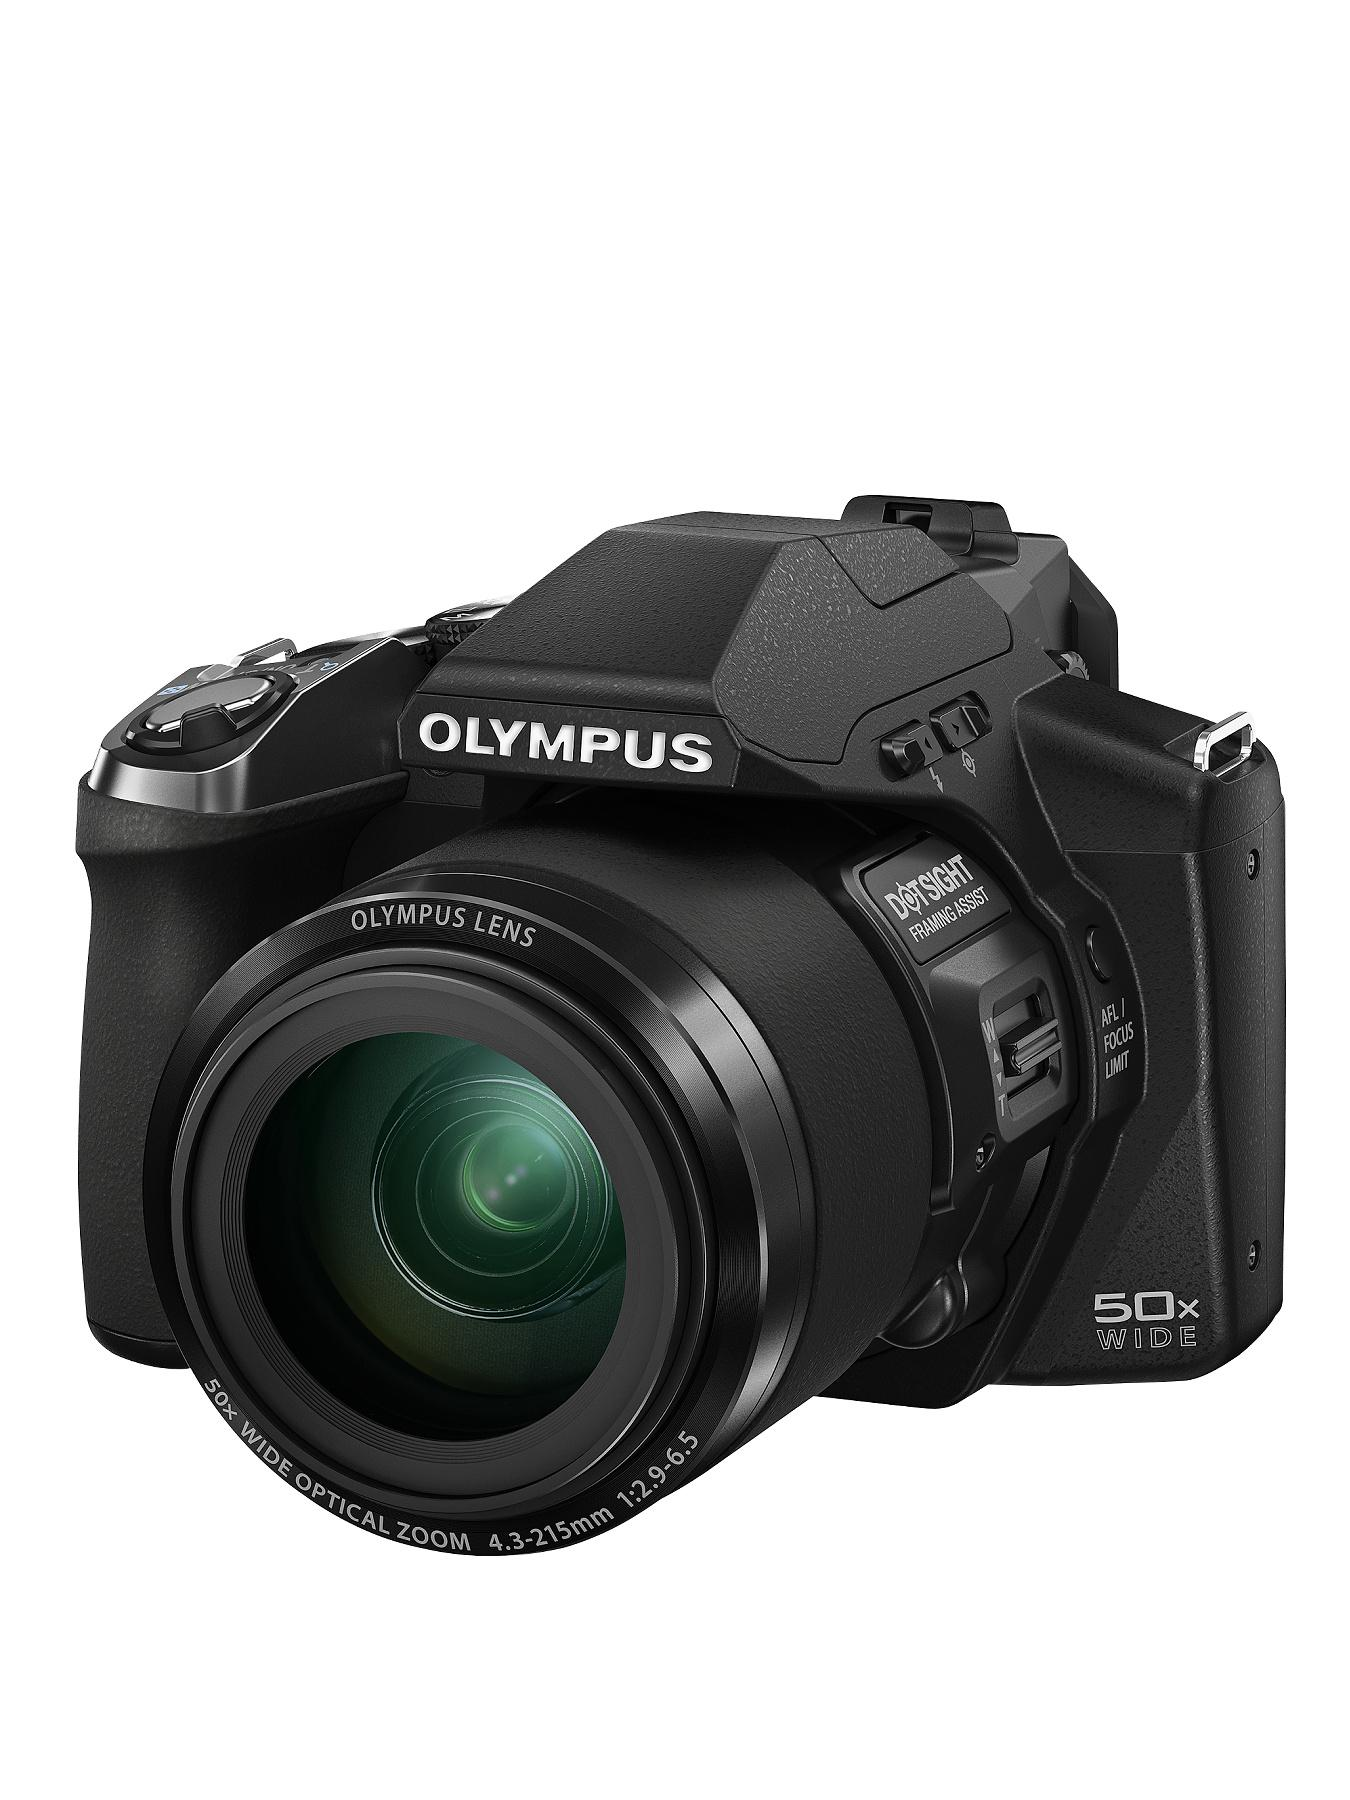 Olympus SP-100EE 14 Megapixel, 50x Zoom, 3 inch LCD, 24 mm Wide Bridge Digital Camera